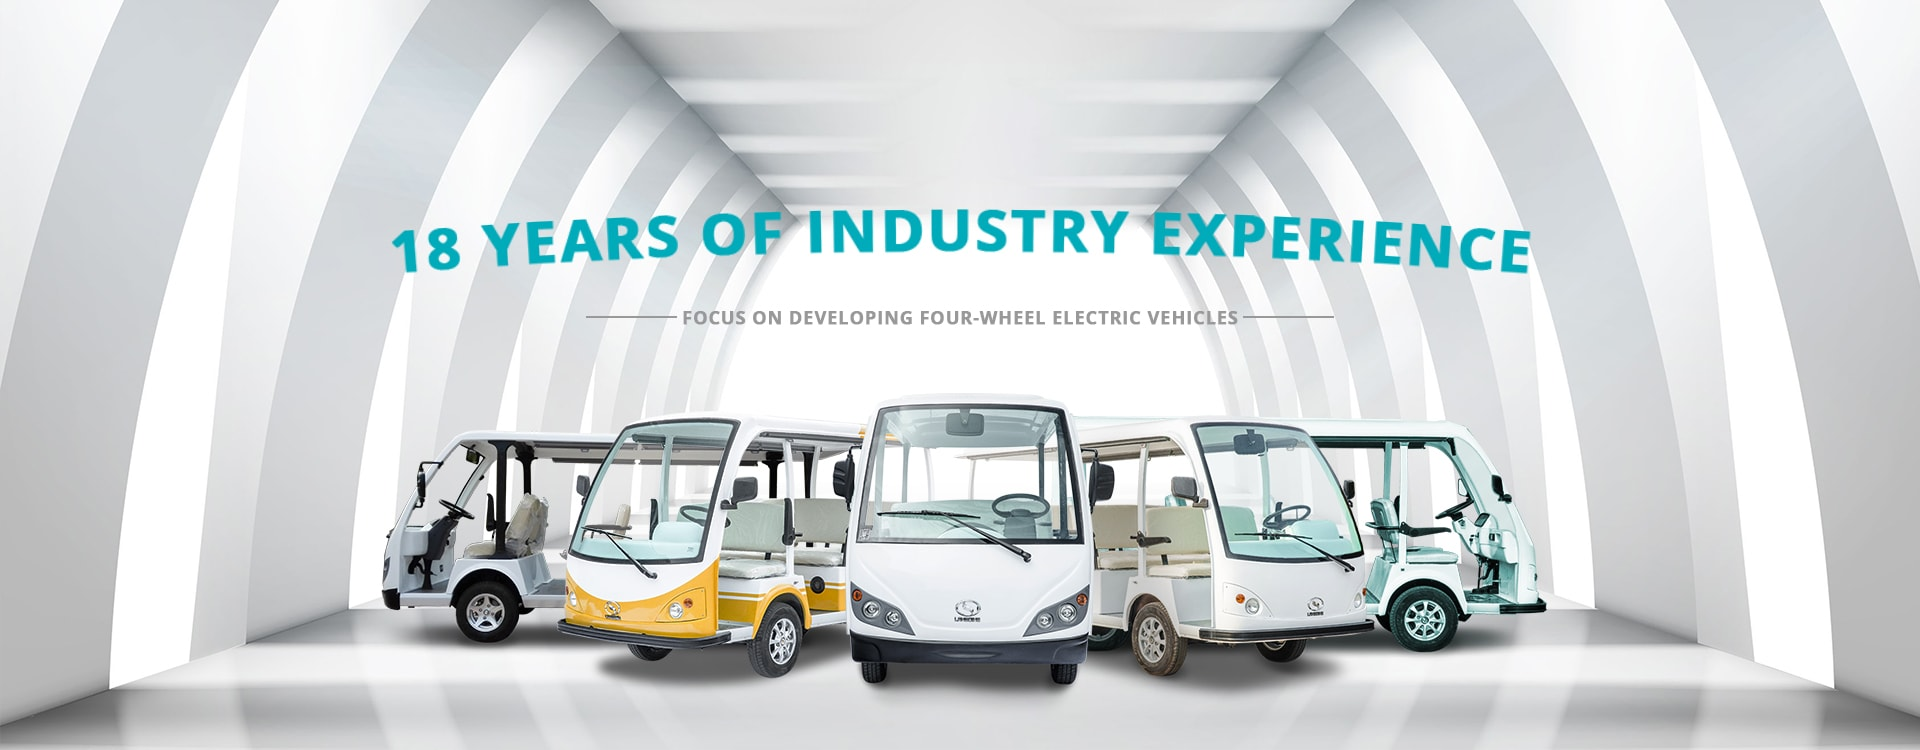 electric shuttle bus with 18 years of industry experience